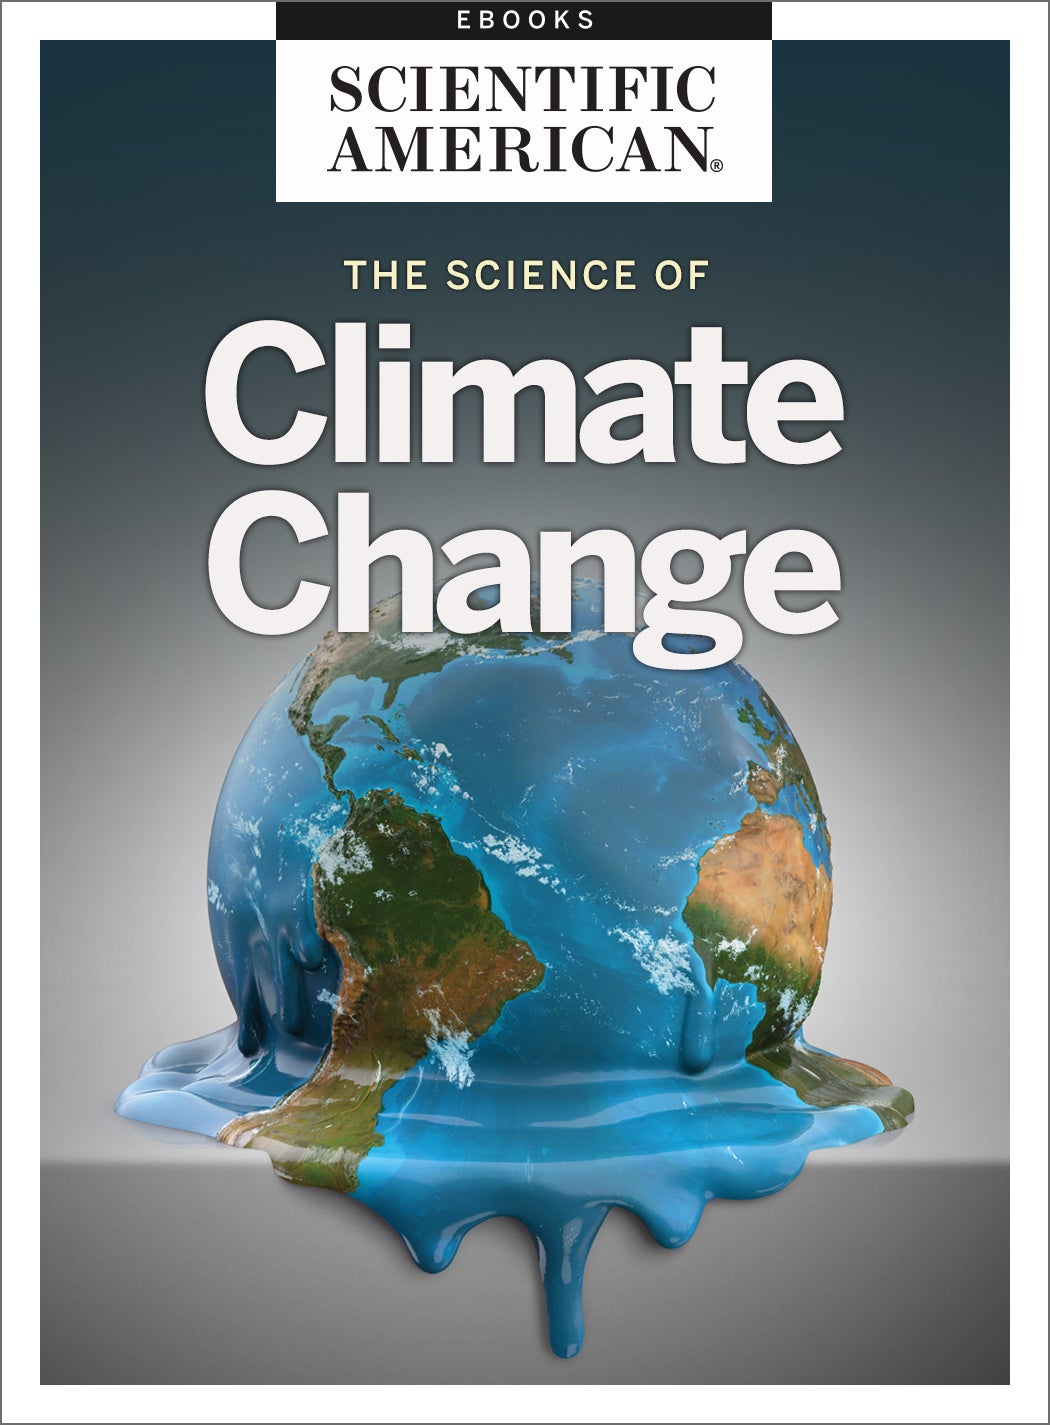 The Science of Climate Change thumbnail